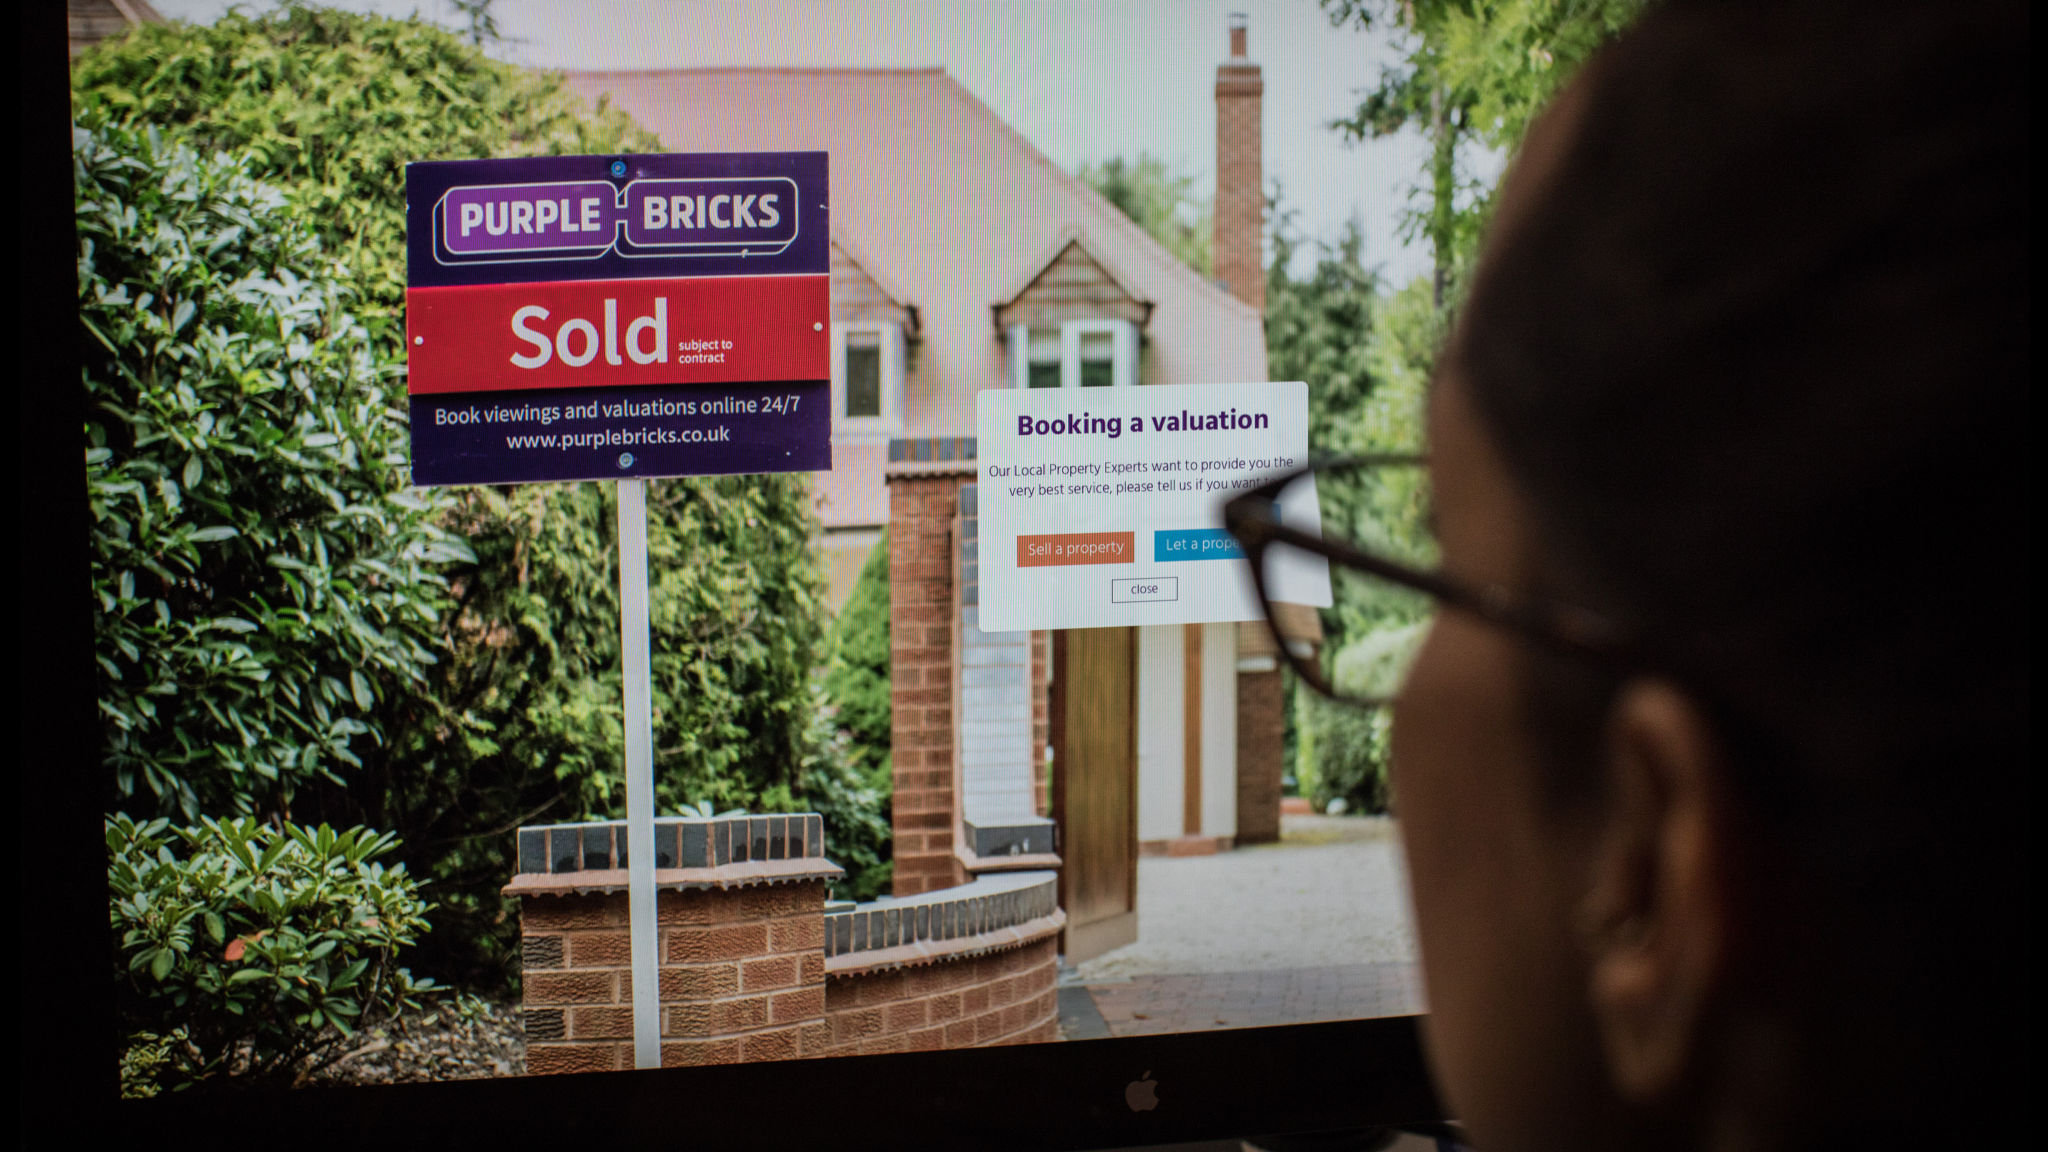 Uk Home Sales Down 165 Per Cent Suggest Hmrc Figures